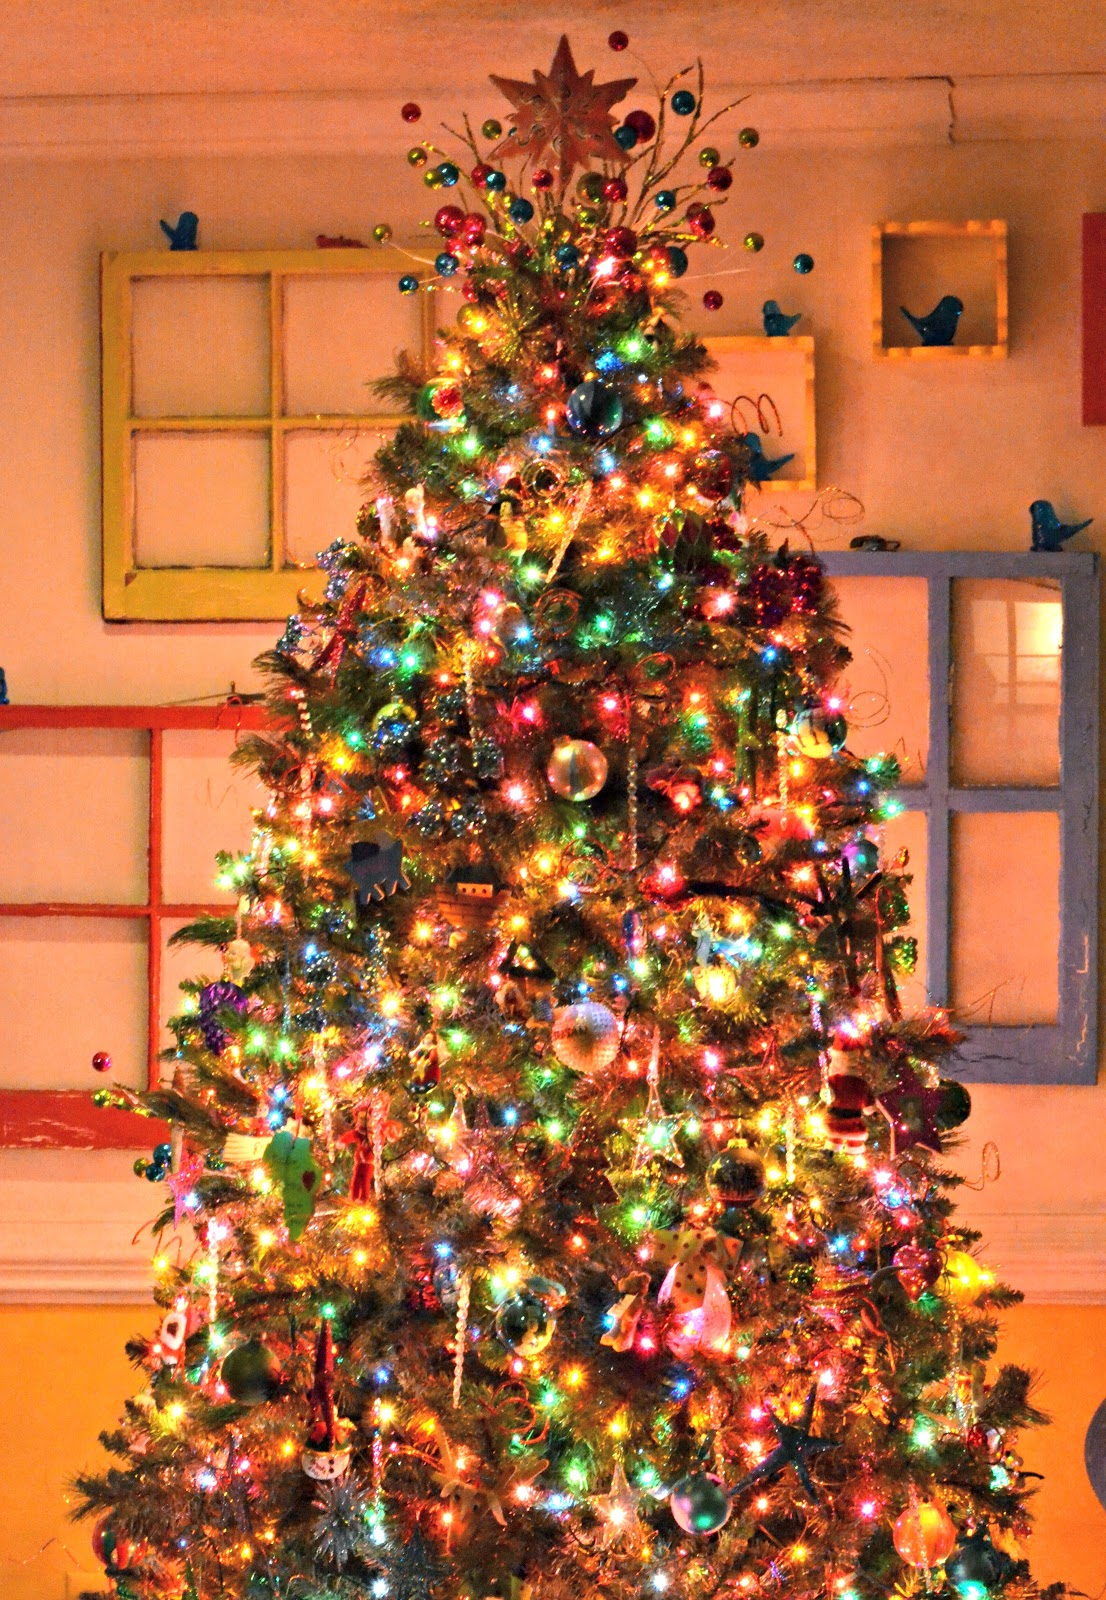 125 Christmas Tree Decorations Ideas For 2016 Decoration Love